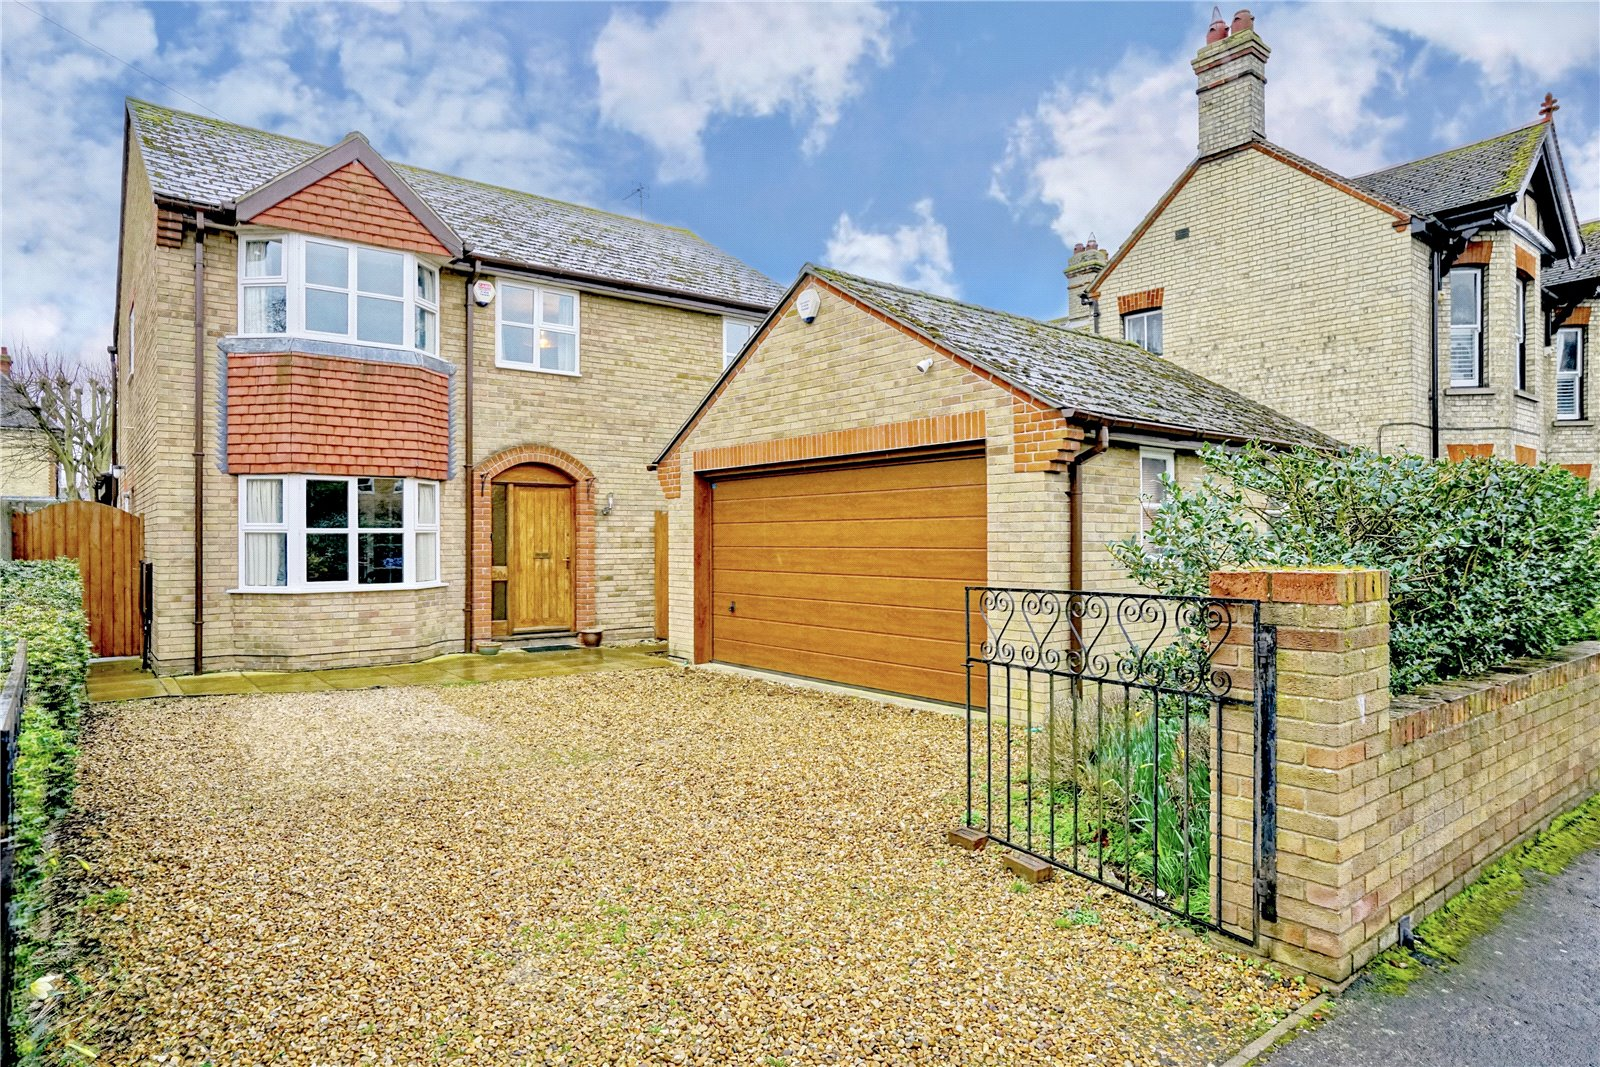 4 bed house for sale in Kings Road, St. Neots, PE19